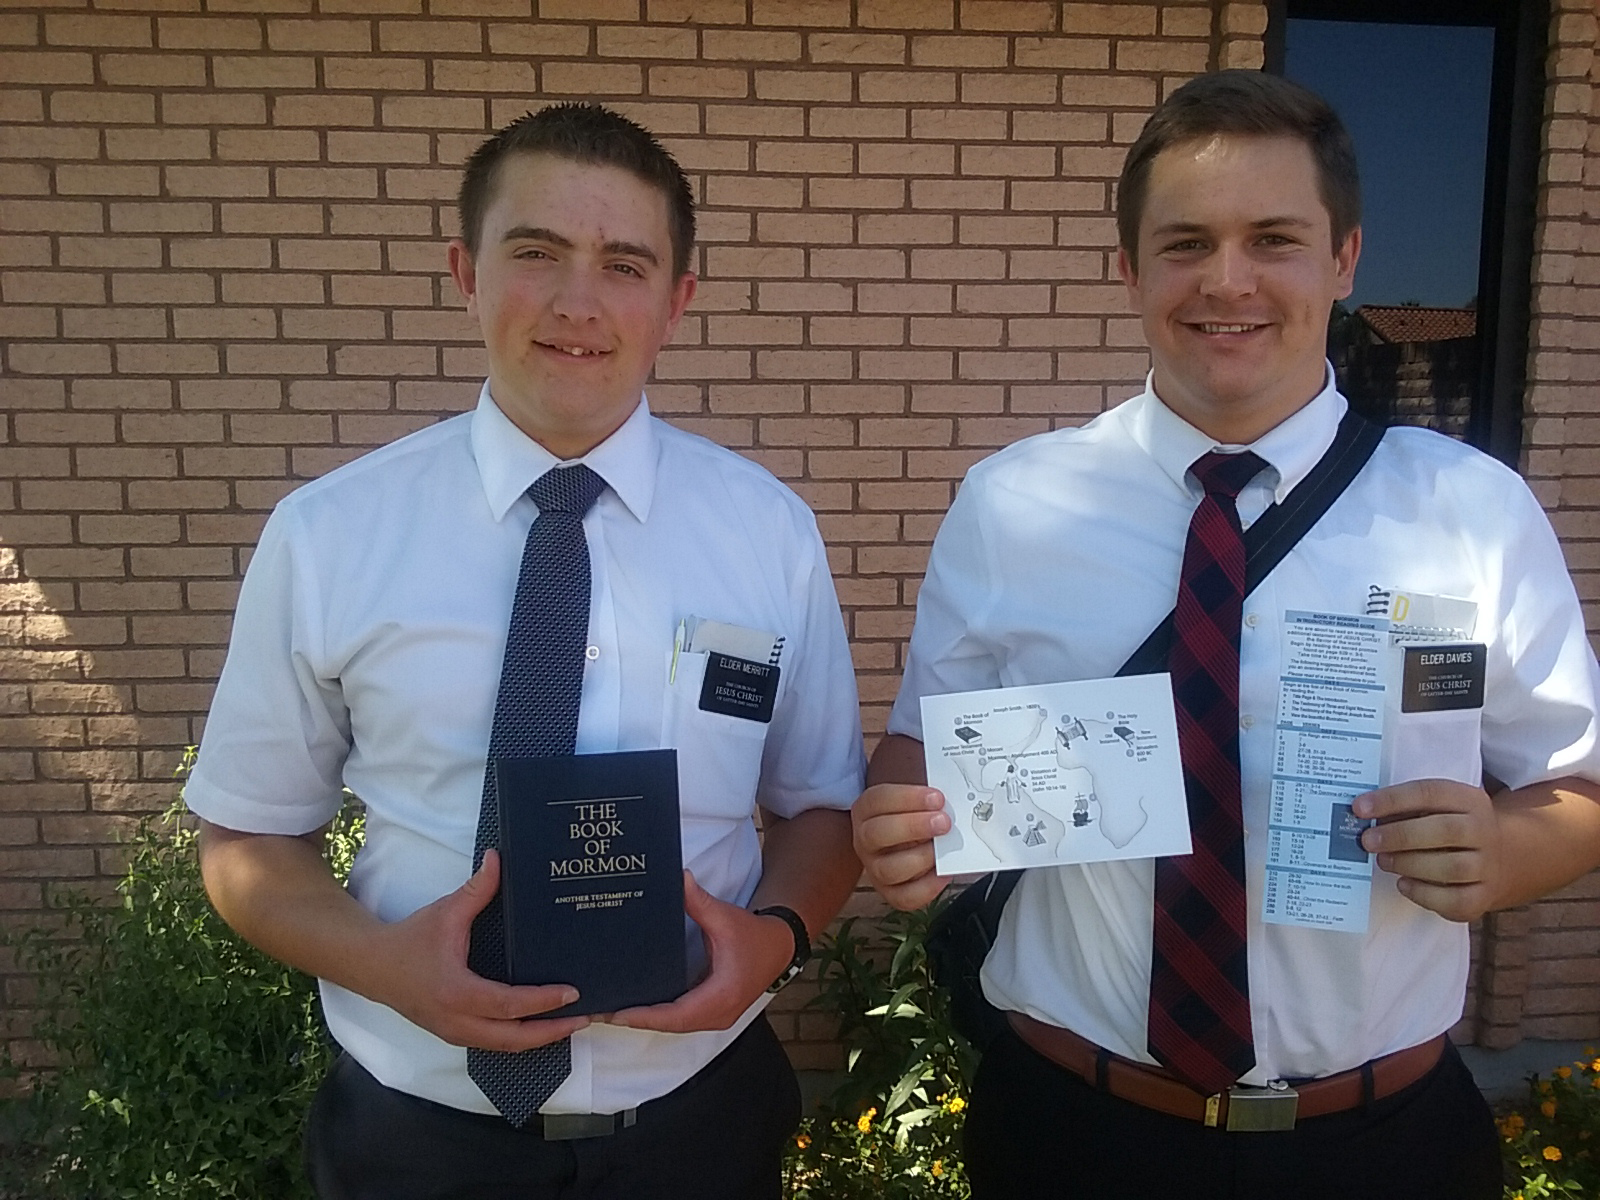 Elder Brayden Merritt And Elder Sean Davies Of The Arizona Gilbert Mission Placed 20 Copies Of The Book Of Mormon In One Day, Using The Approach Developed By Lorin And Lina Hatch, Member And Leader Support Missionaries In That Mission. Photo Courtesy Of Lorin Hatch